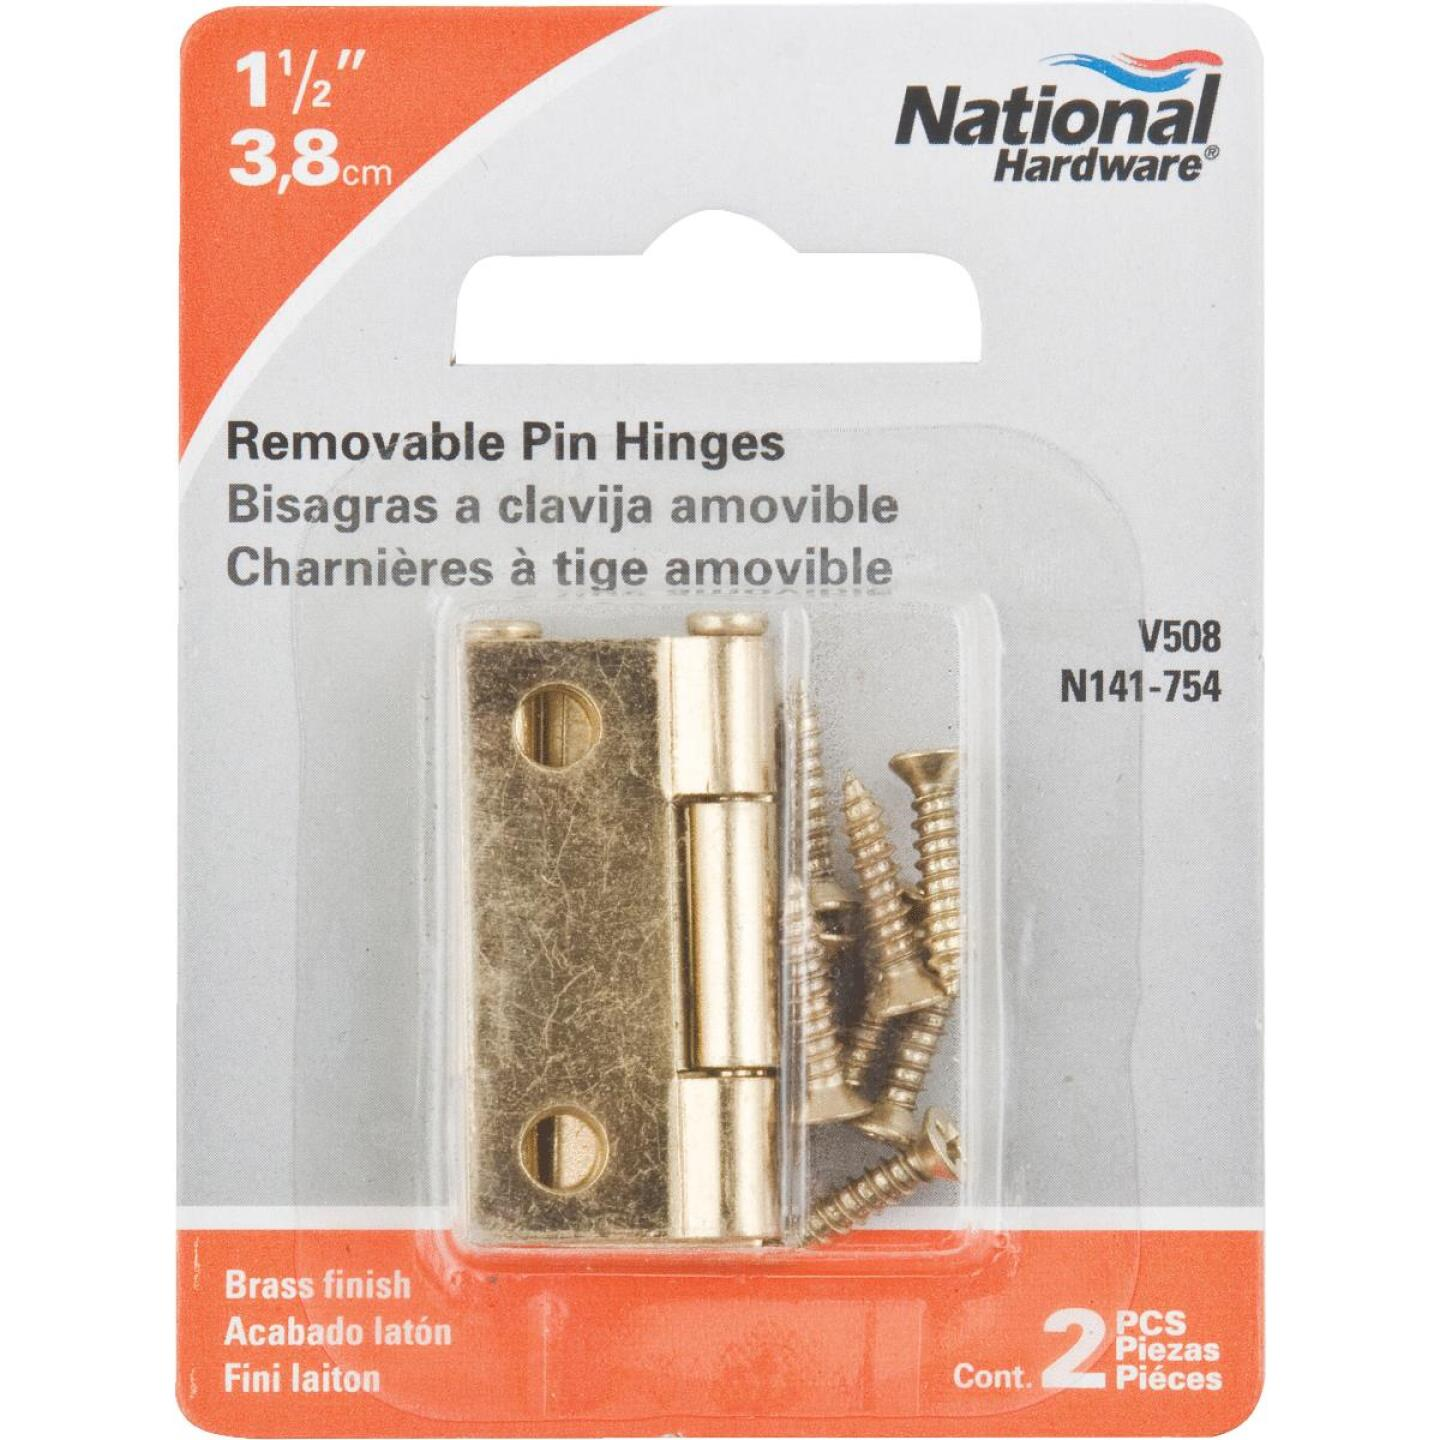 National 1-1/2 In. Brass Loose-Pin Narrow Hinge (2-Pack) Image 2